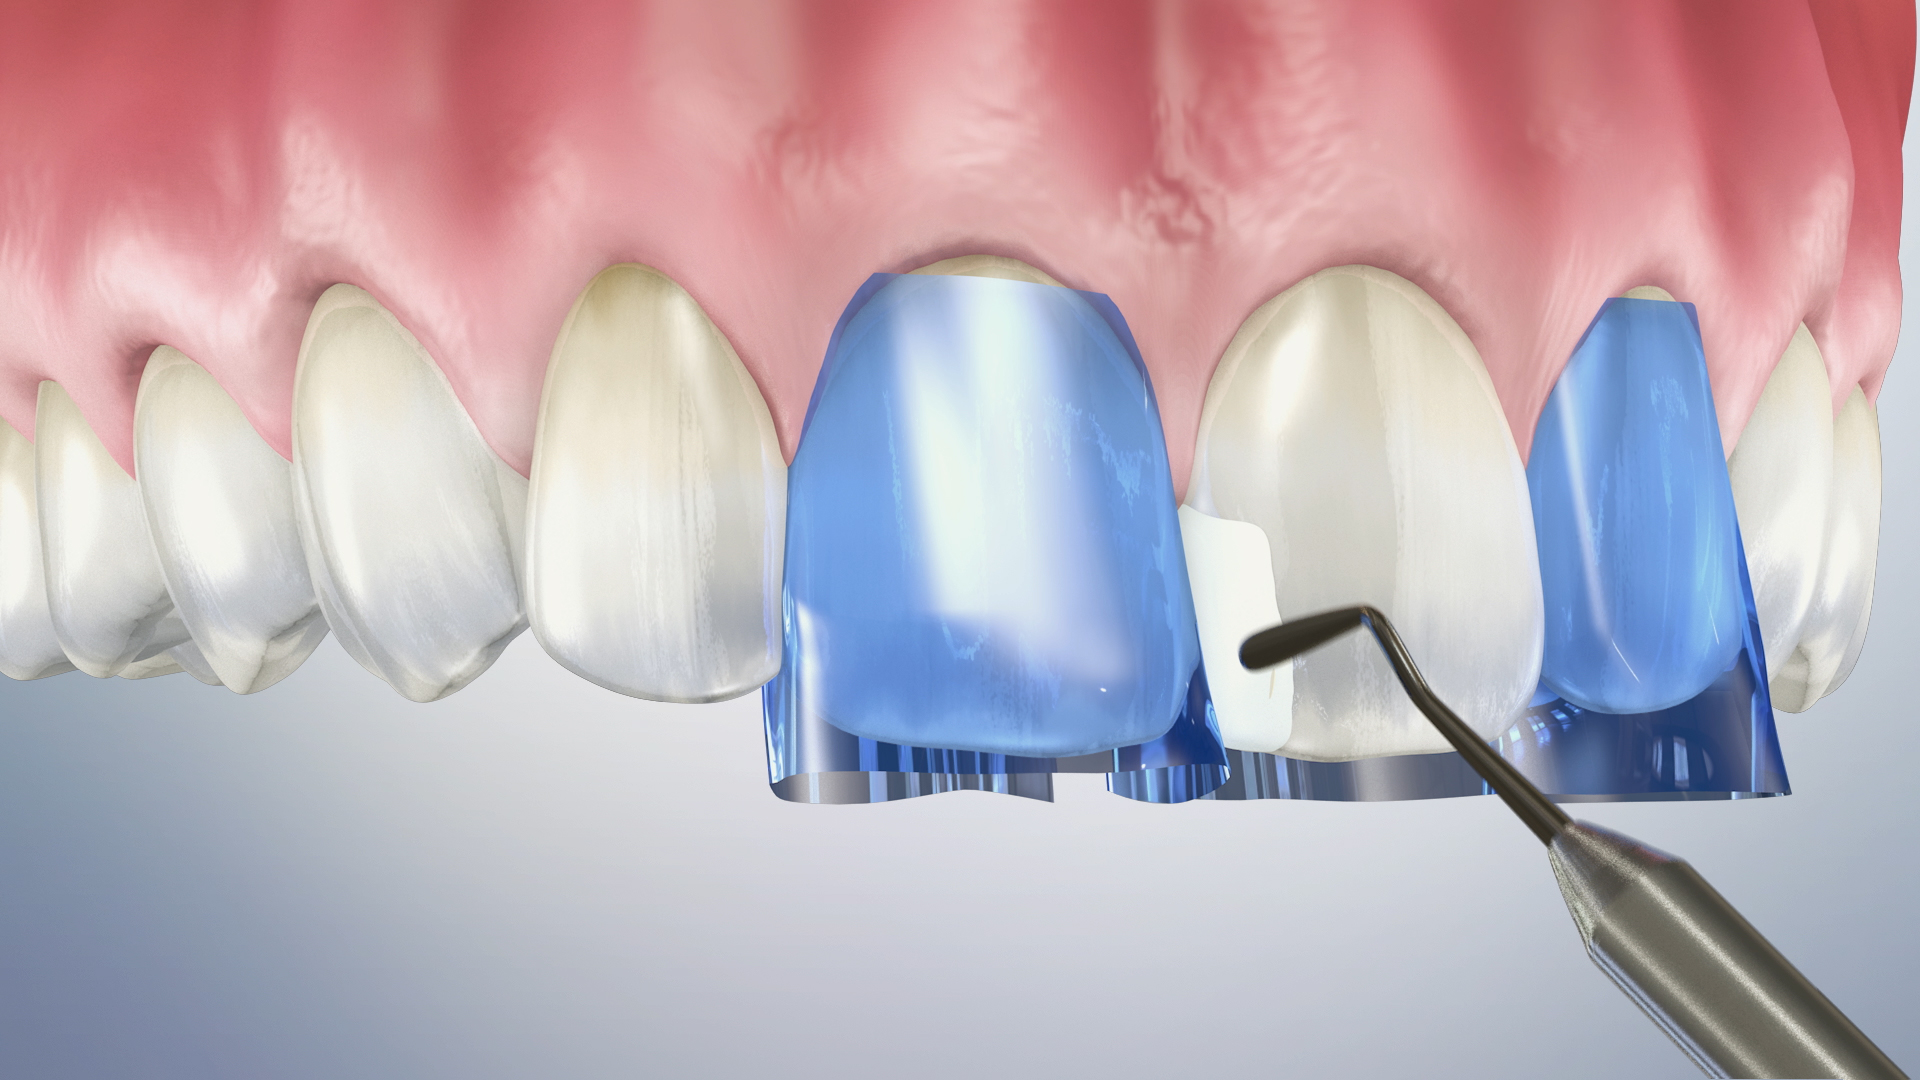 Thumbnail for a video on Composite Filling (Anterior)